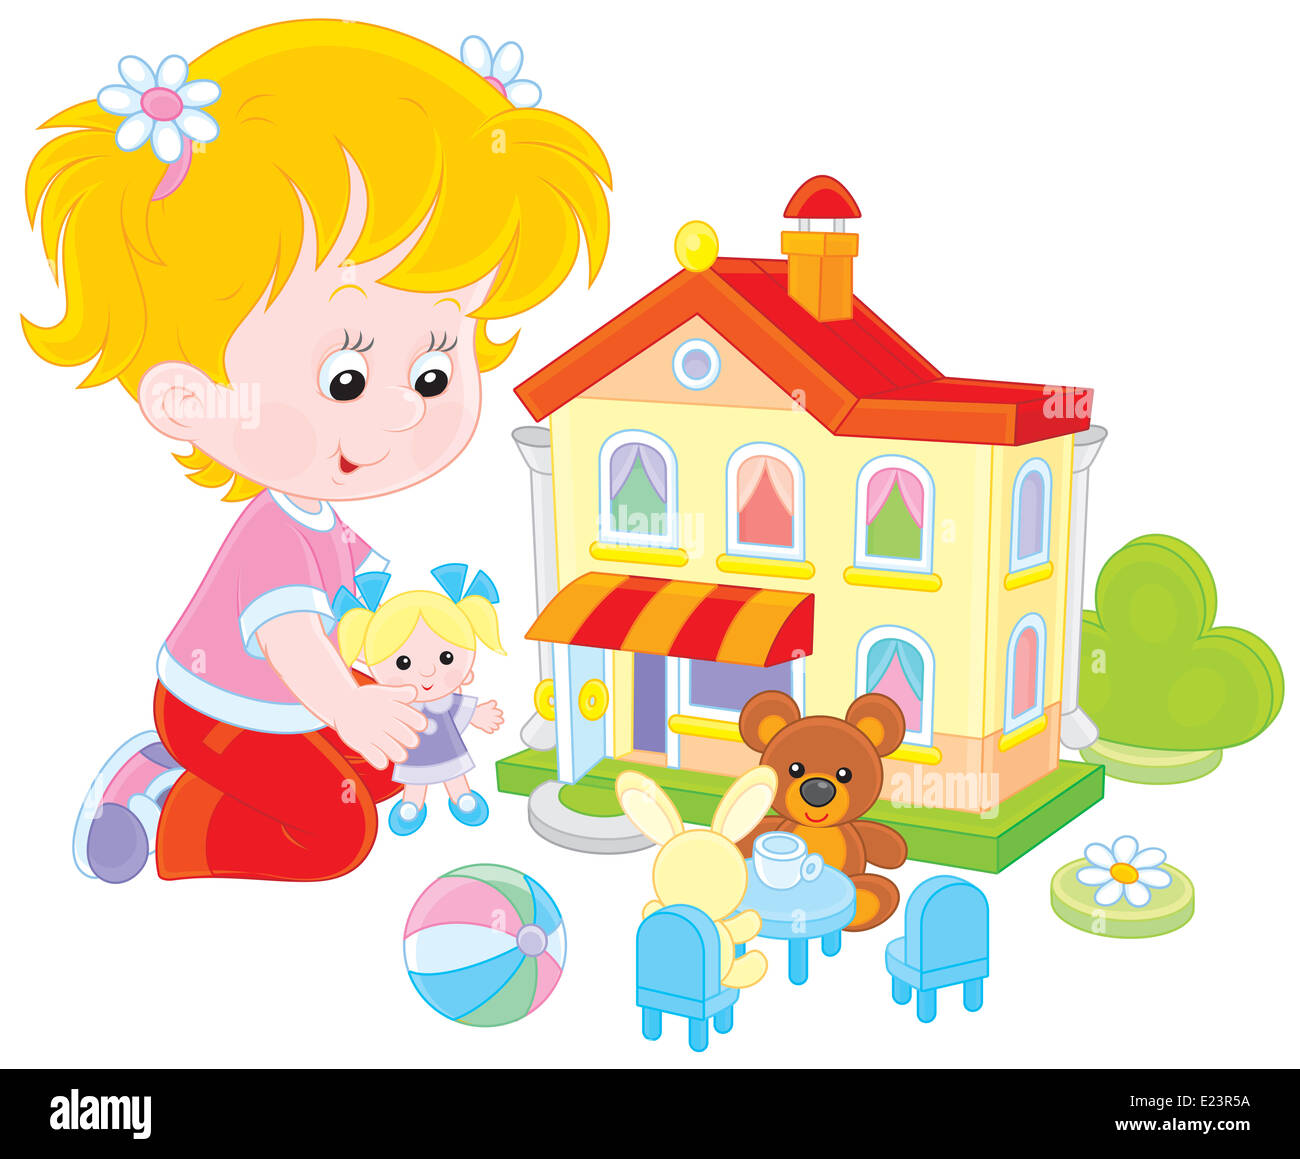 Girl with a doll and toy house - Stock Image